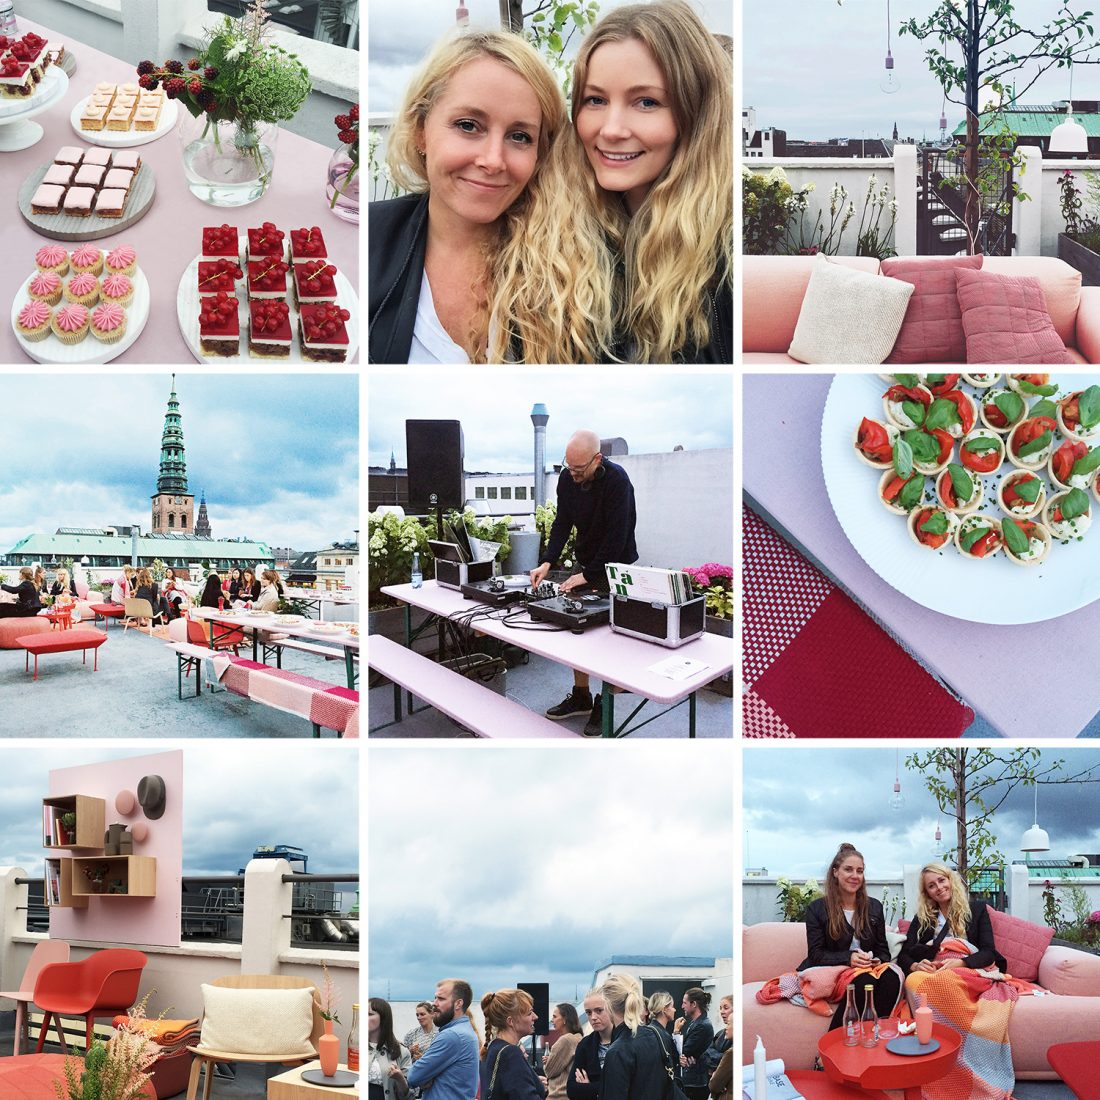 muuto-rooftop-party@2x.jpg